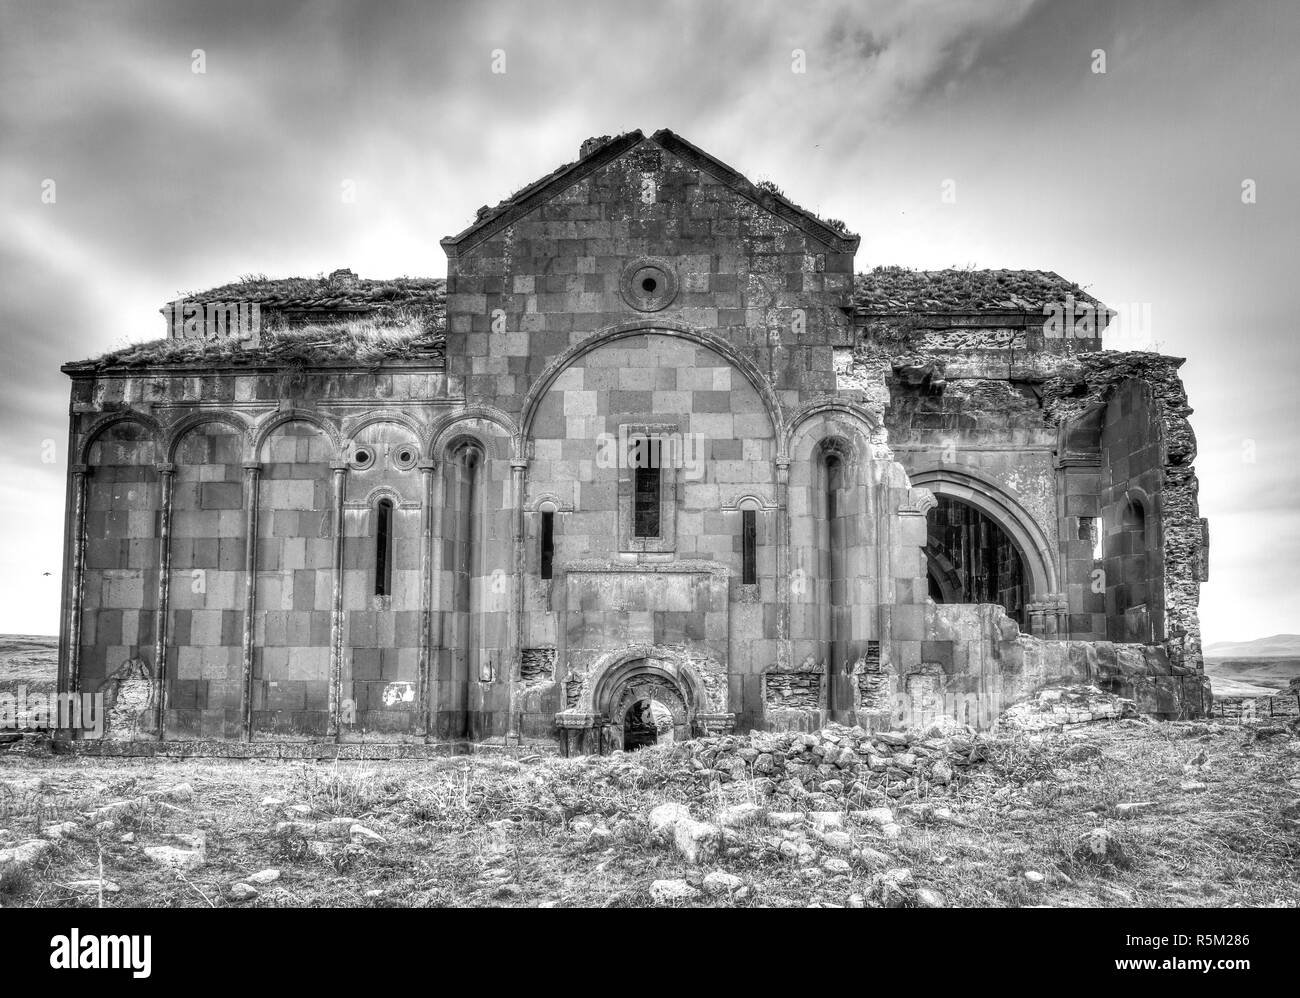 the cathedral of ani,former capital of armenia - Stock Image